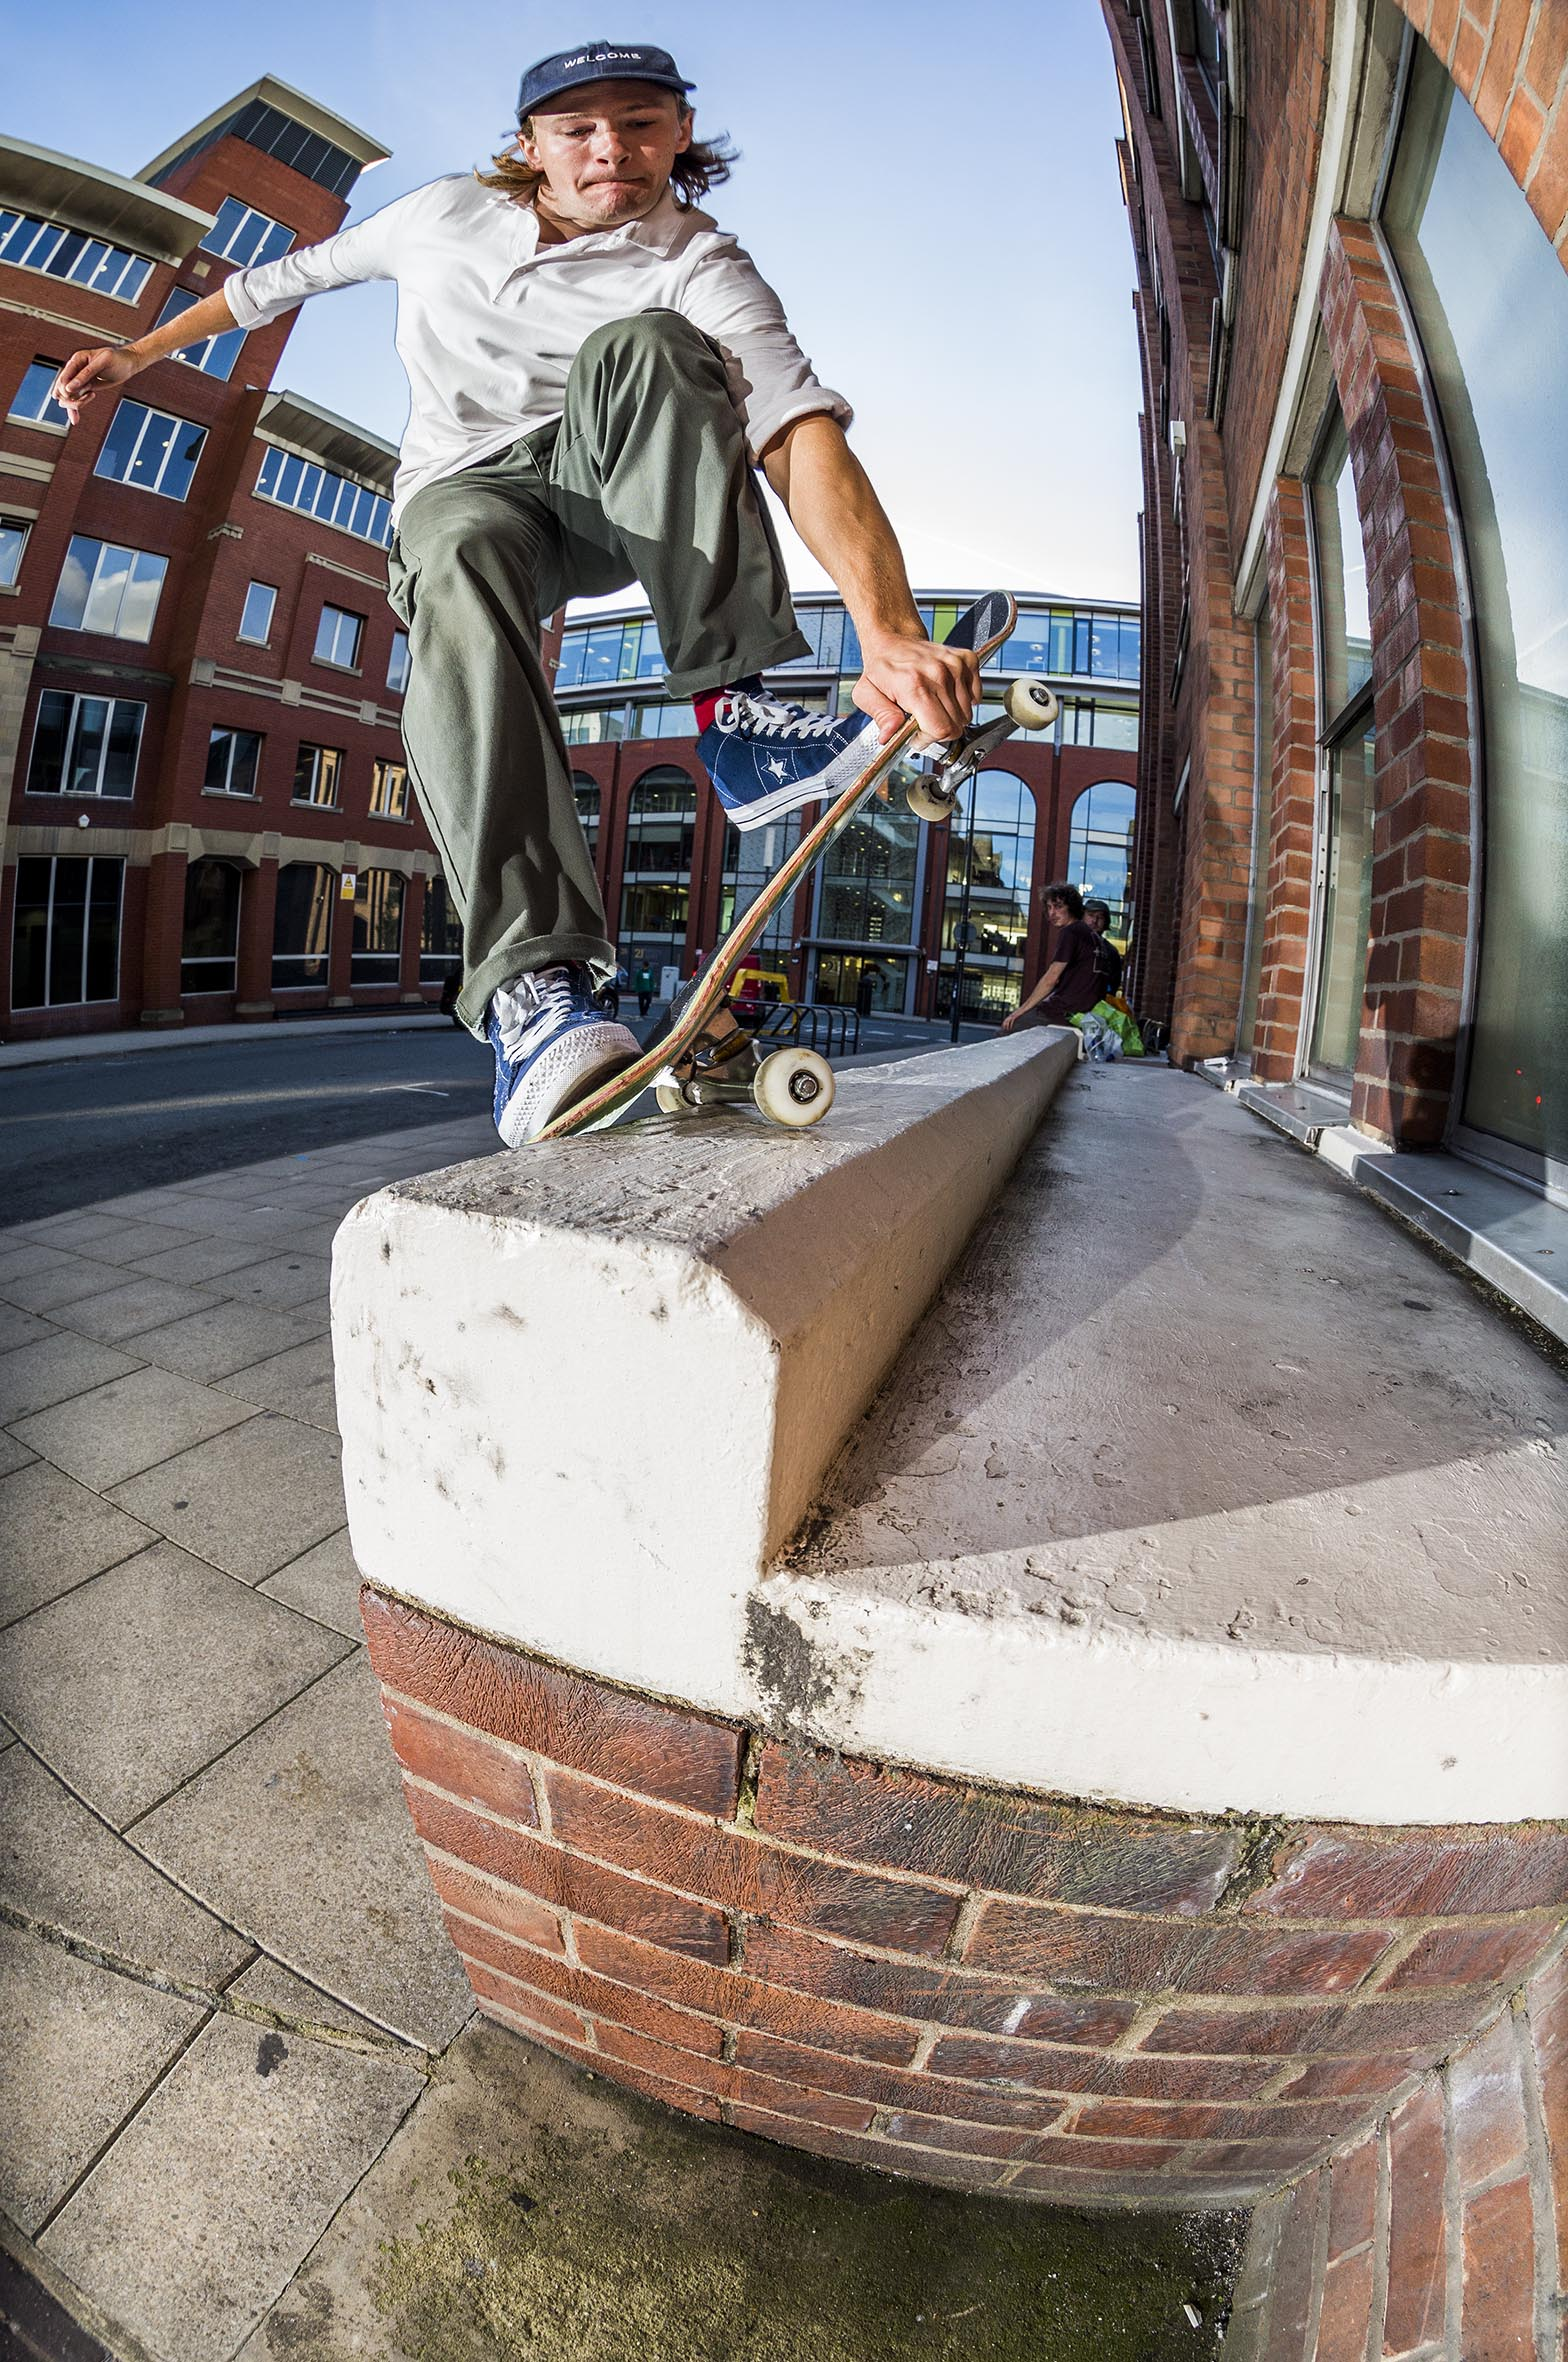 Liam Hobson - chuck on nosegrind